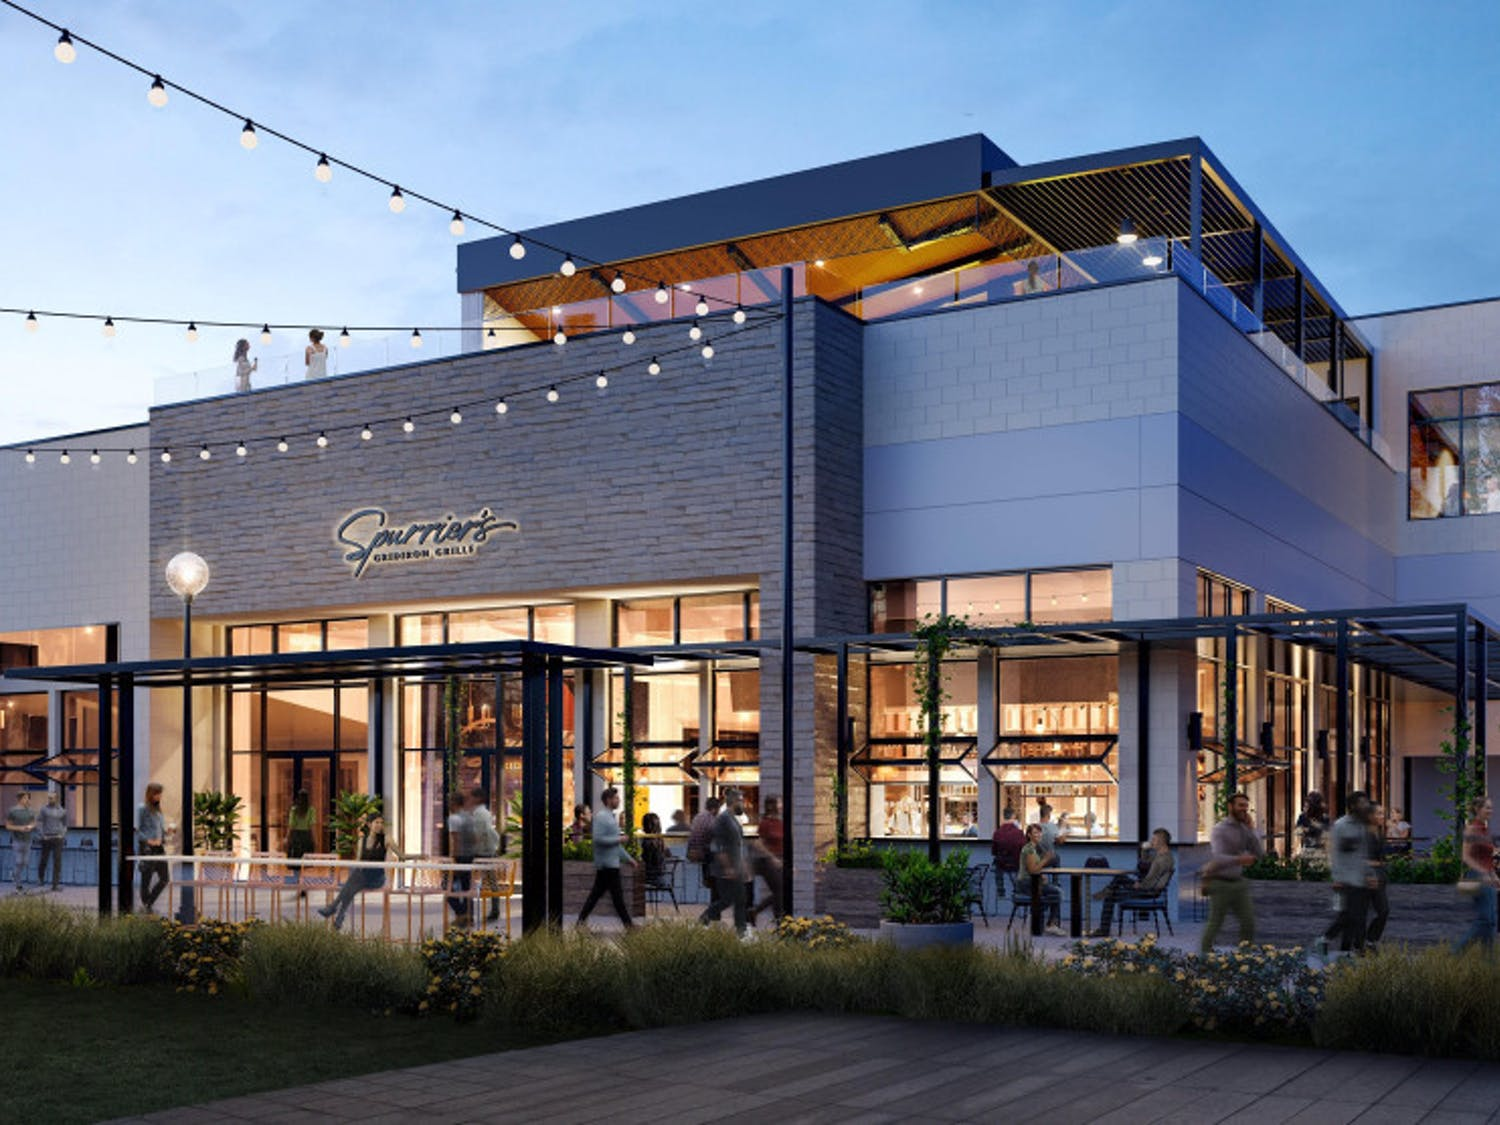 The 16,700-square-foot restaurant will open in Celebration Pointe.